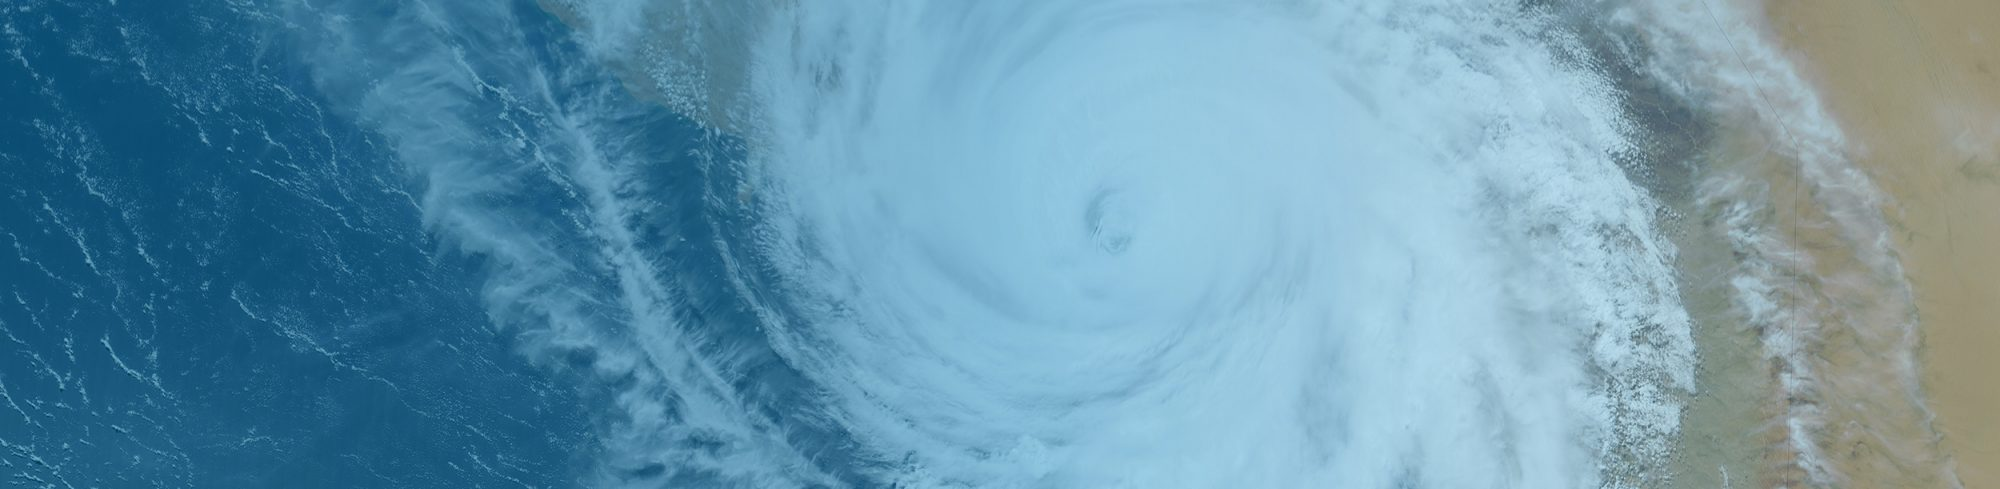 Satellite view of a huricane